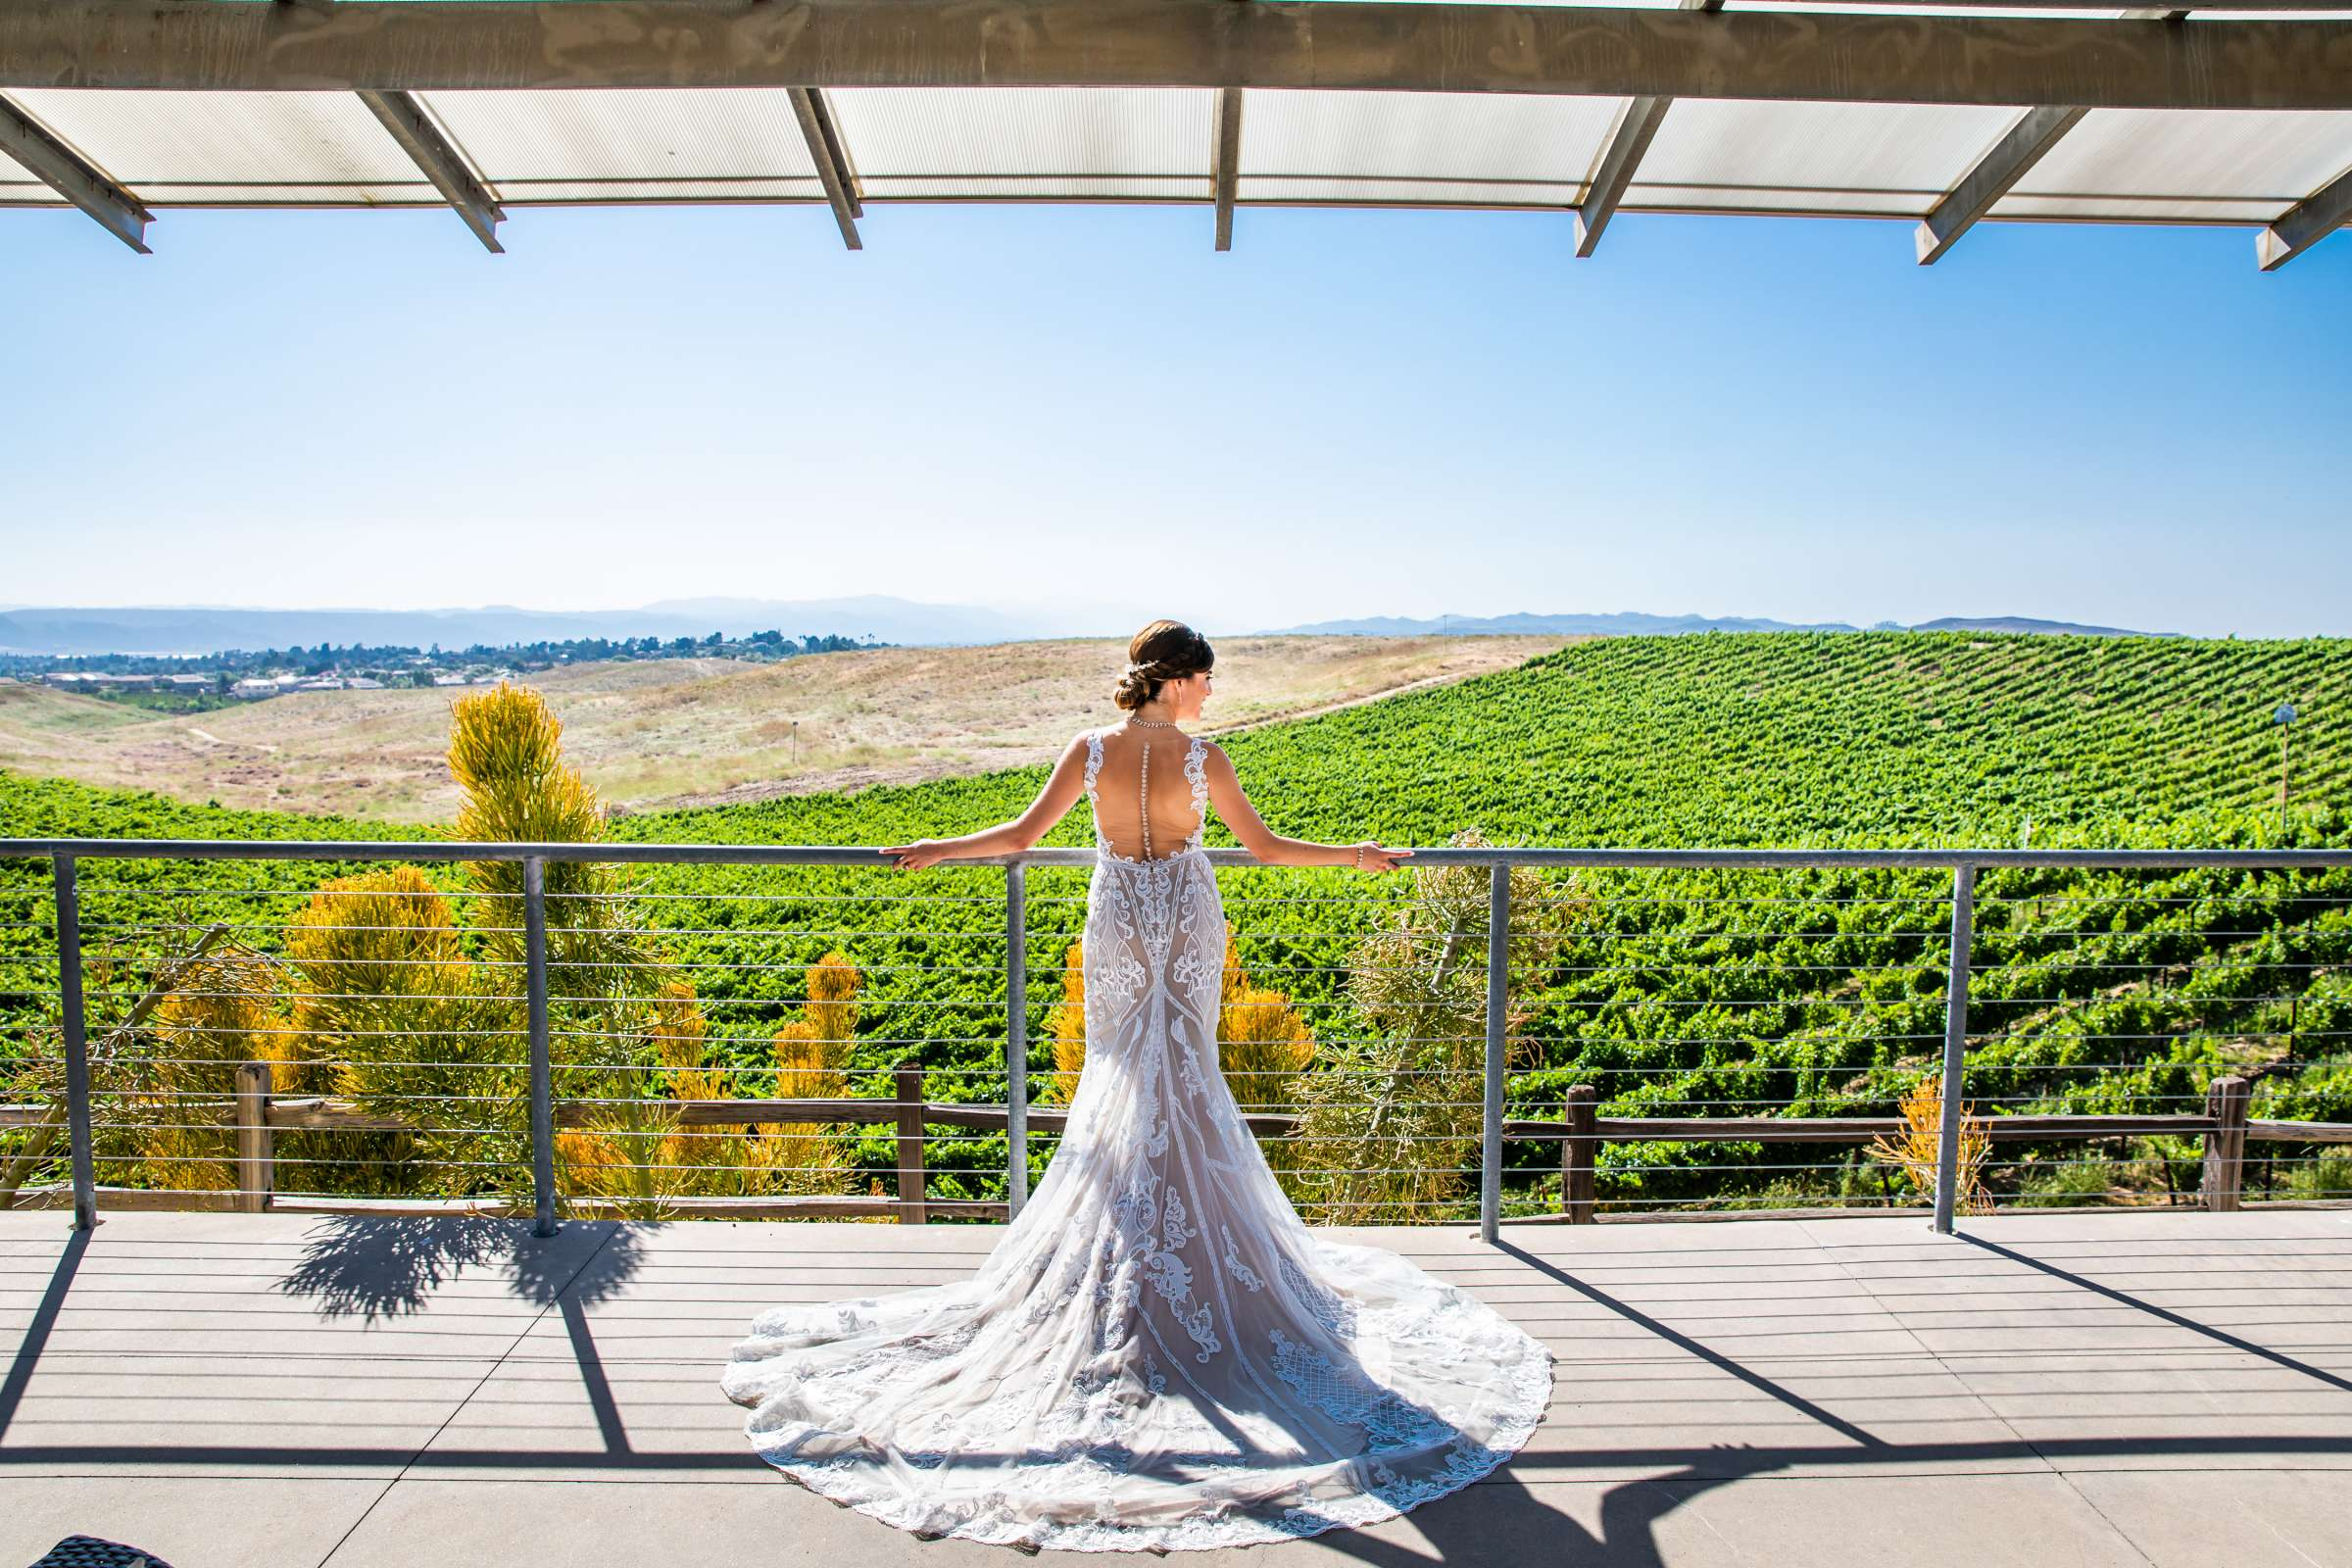 Winery at Callaway Vineyards & Winery Wedding coordinated by Michelle Garibay Events, Chelsea and Luis carlos Wedding Photo #12 by True Photography